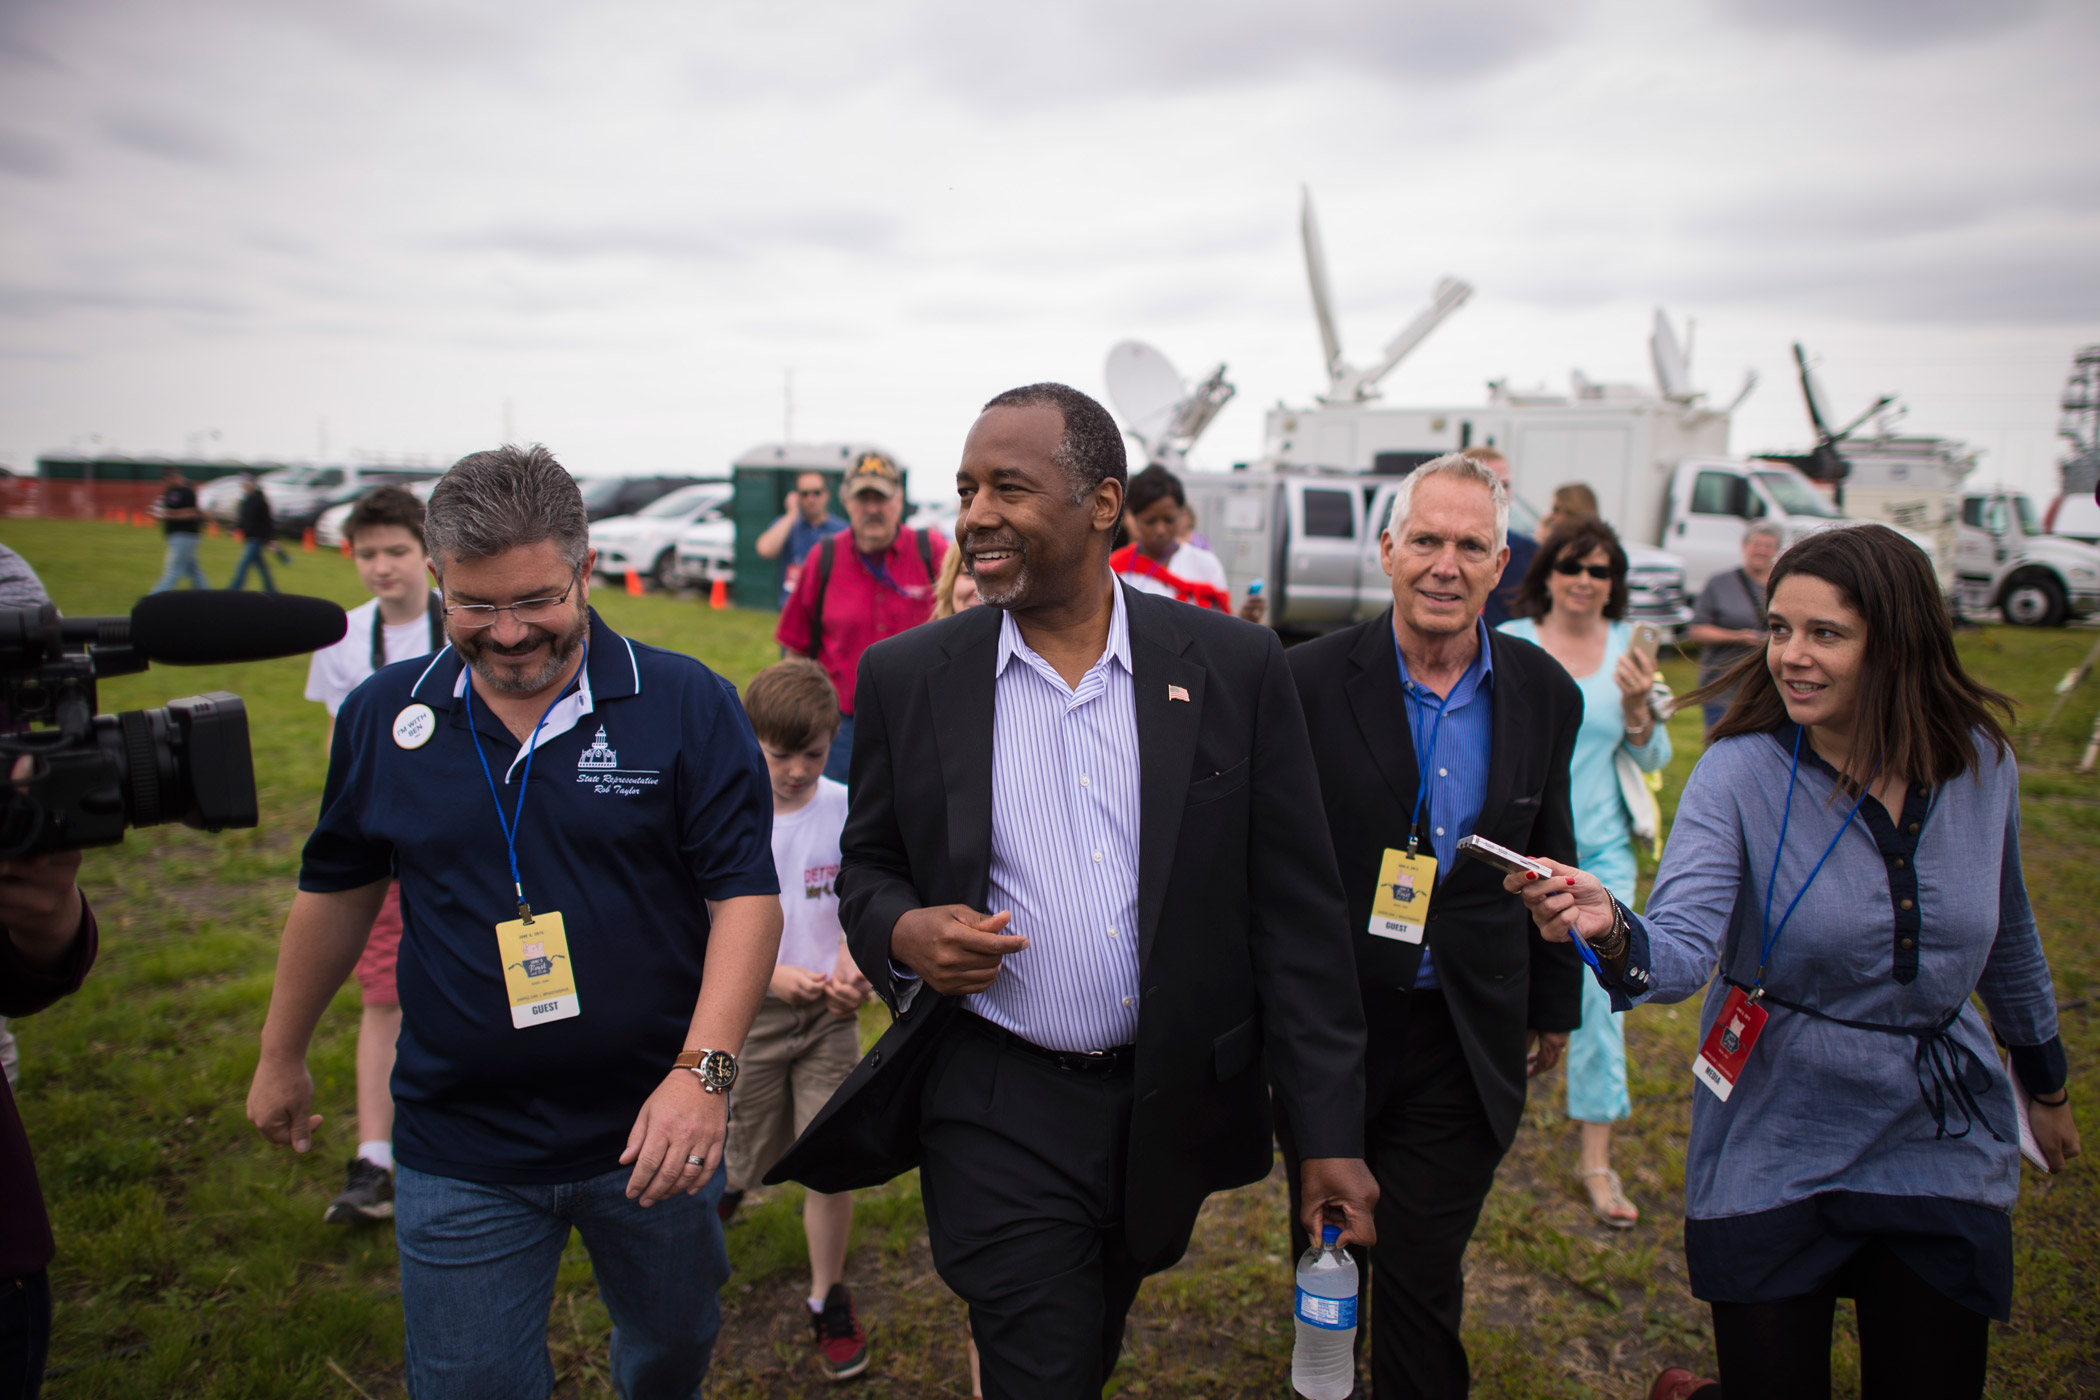 Ben Carson at a political fund-raiser for GOP candidates on June 6, 2015, in Boone, Iowa.